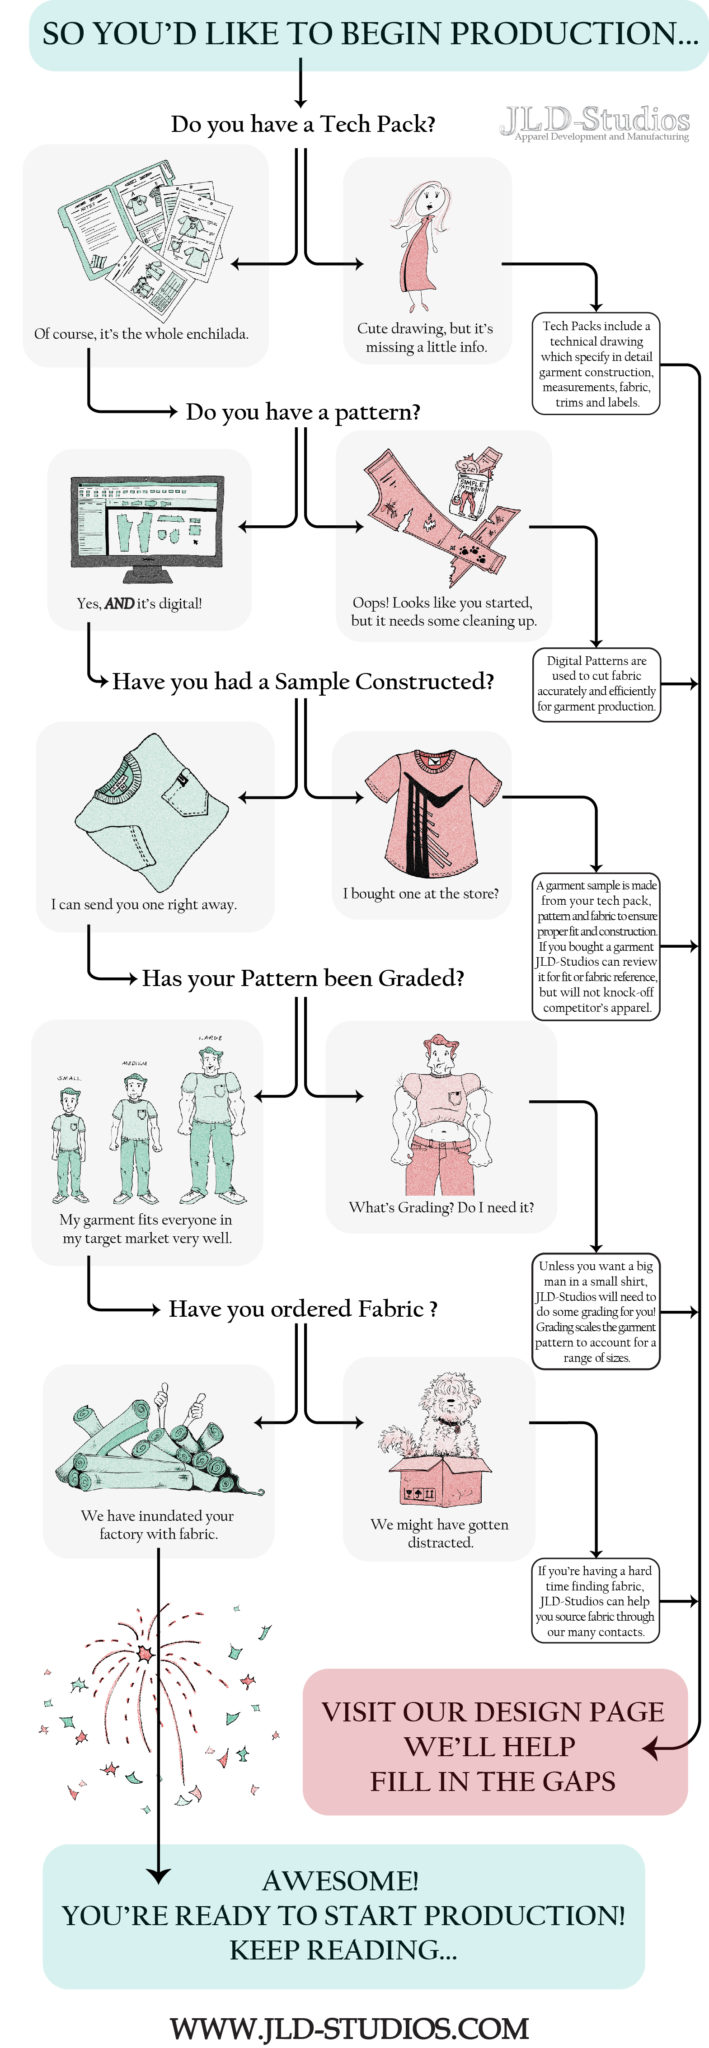 Apparel Production Infographic